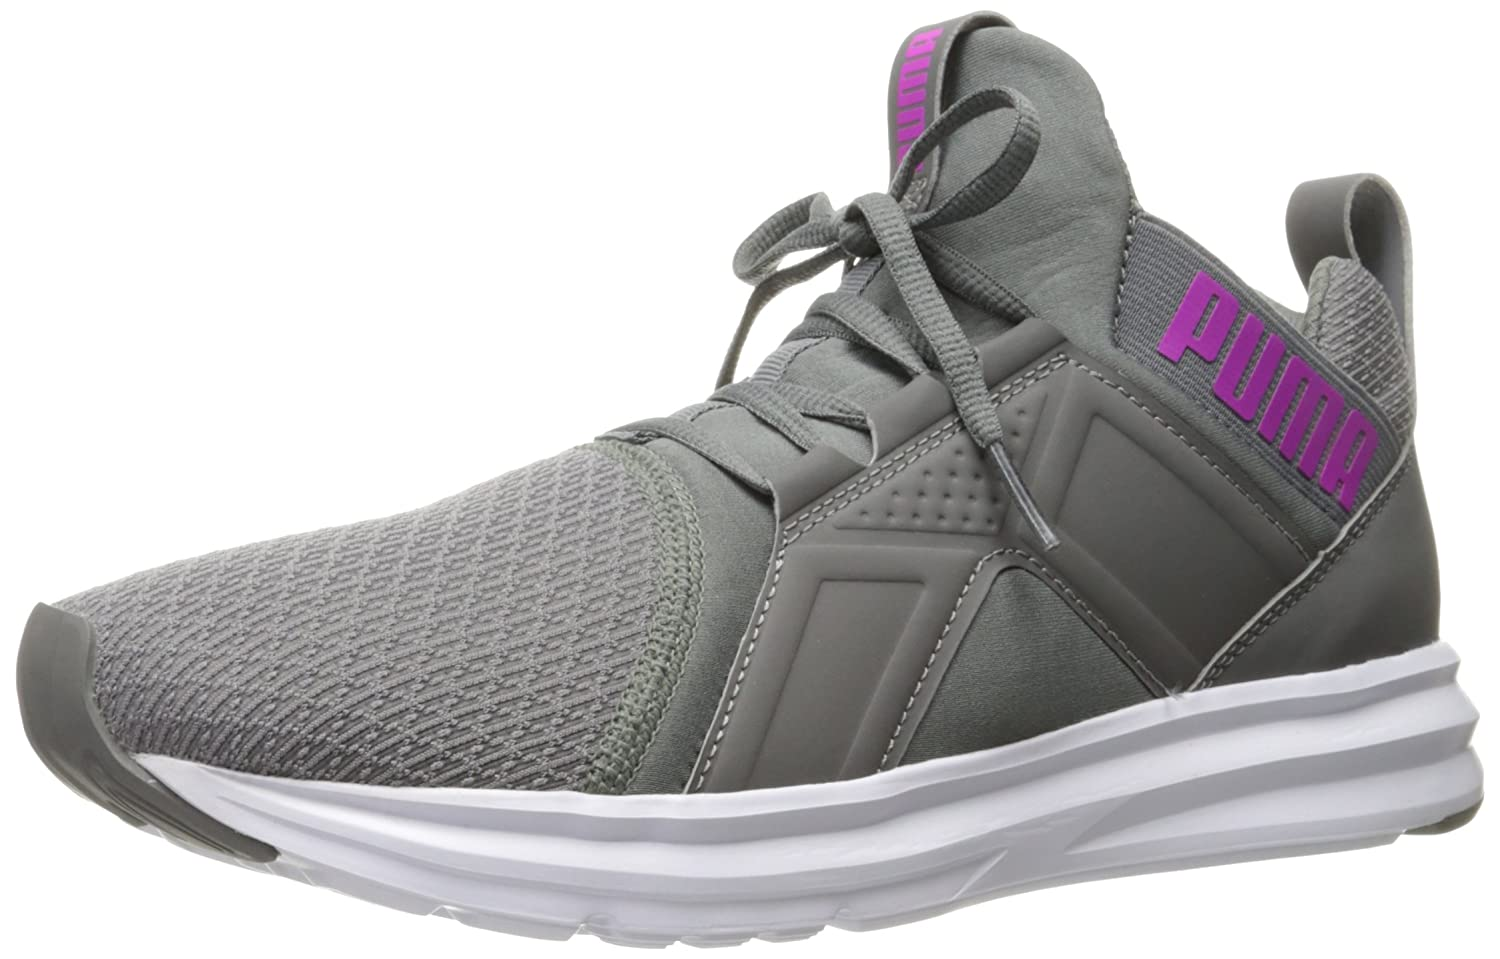 PUMA Women's Enzo WN's Cross-Trainer Shoe B01J5NSQ6M 8.5 B(M) US|Quiet Shade